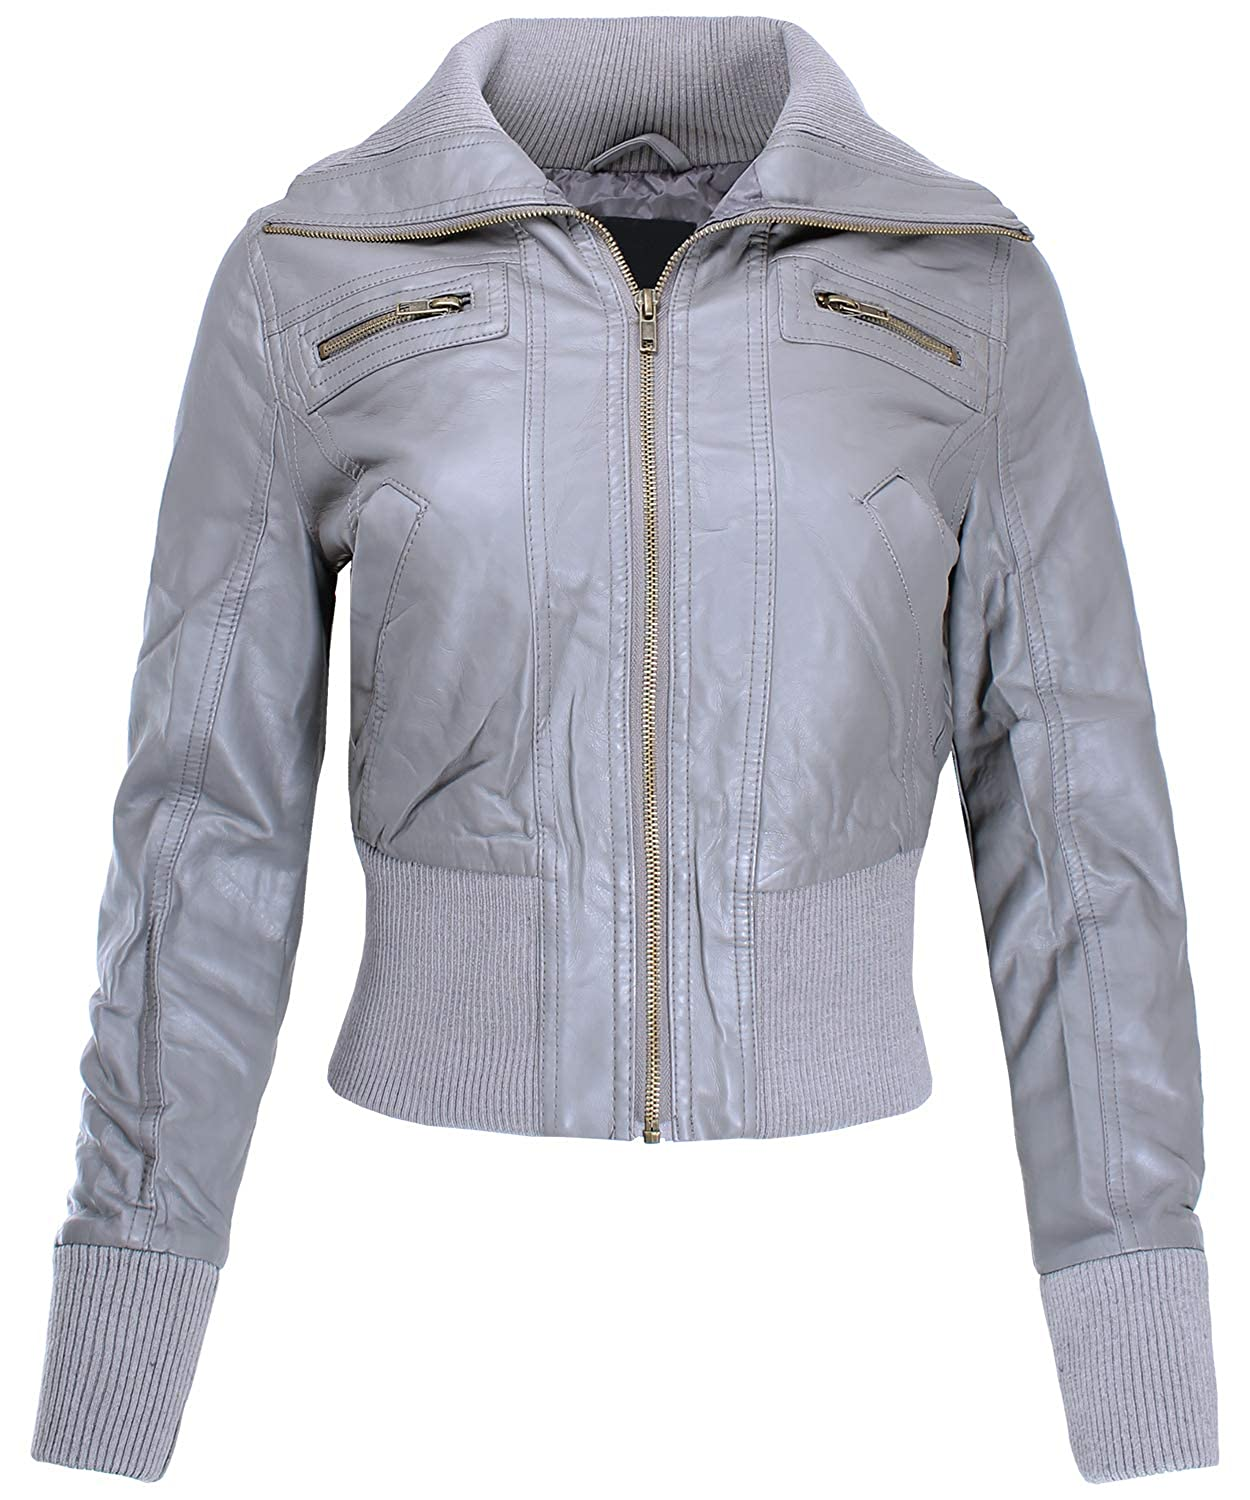 Ladies' Code Women's Zip up Cropped Biker Faux Leather Jacket LCJA038